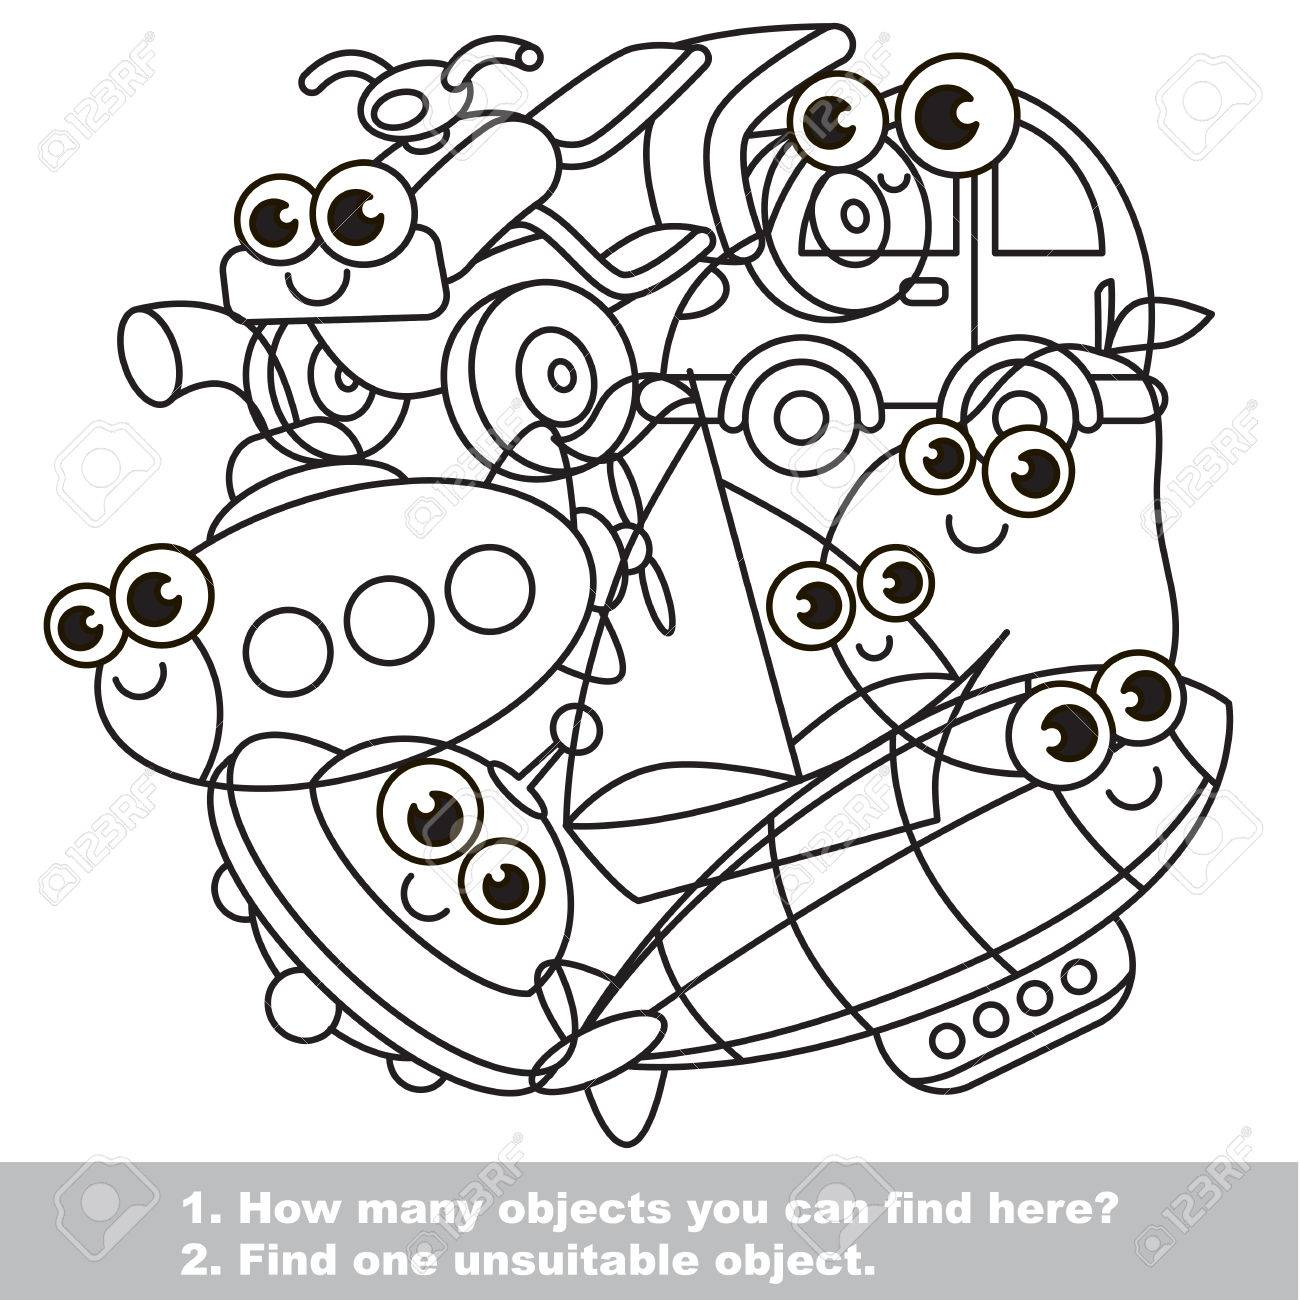 Cute Toy Machines Mishmash Set In Vector Outlined To Be Colored